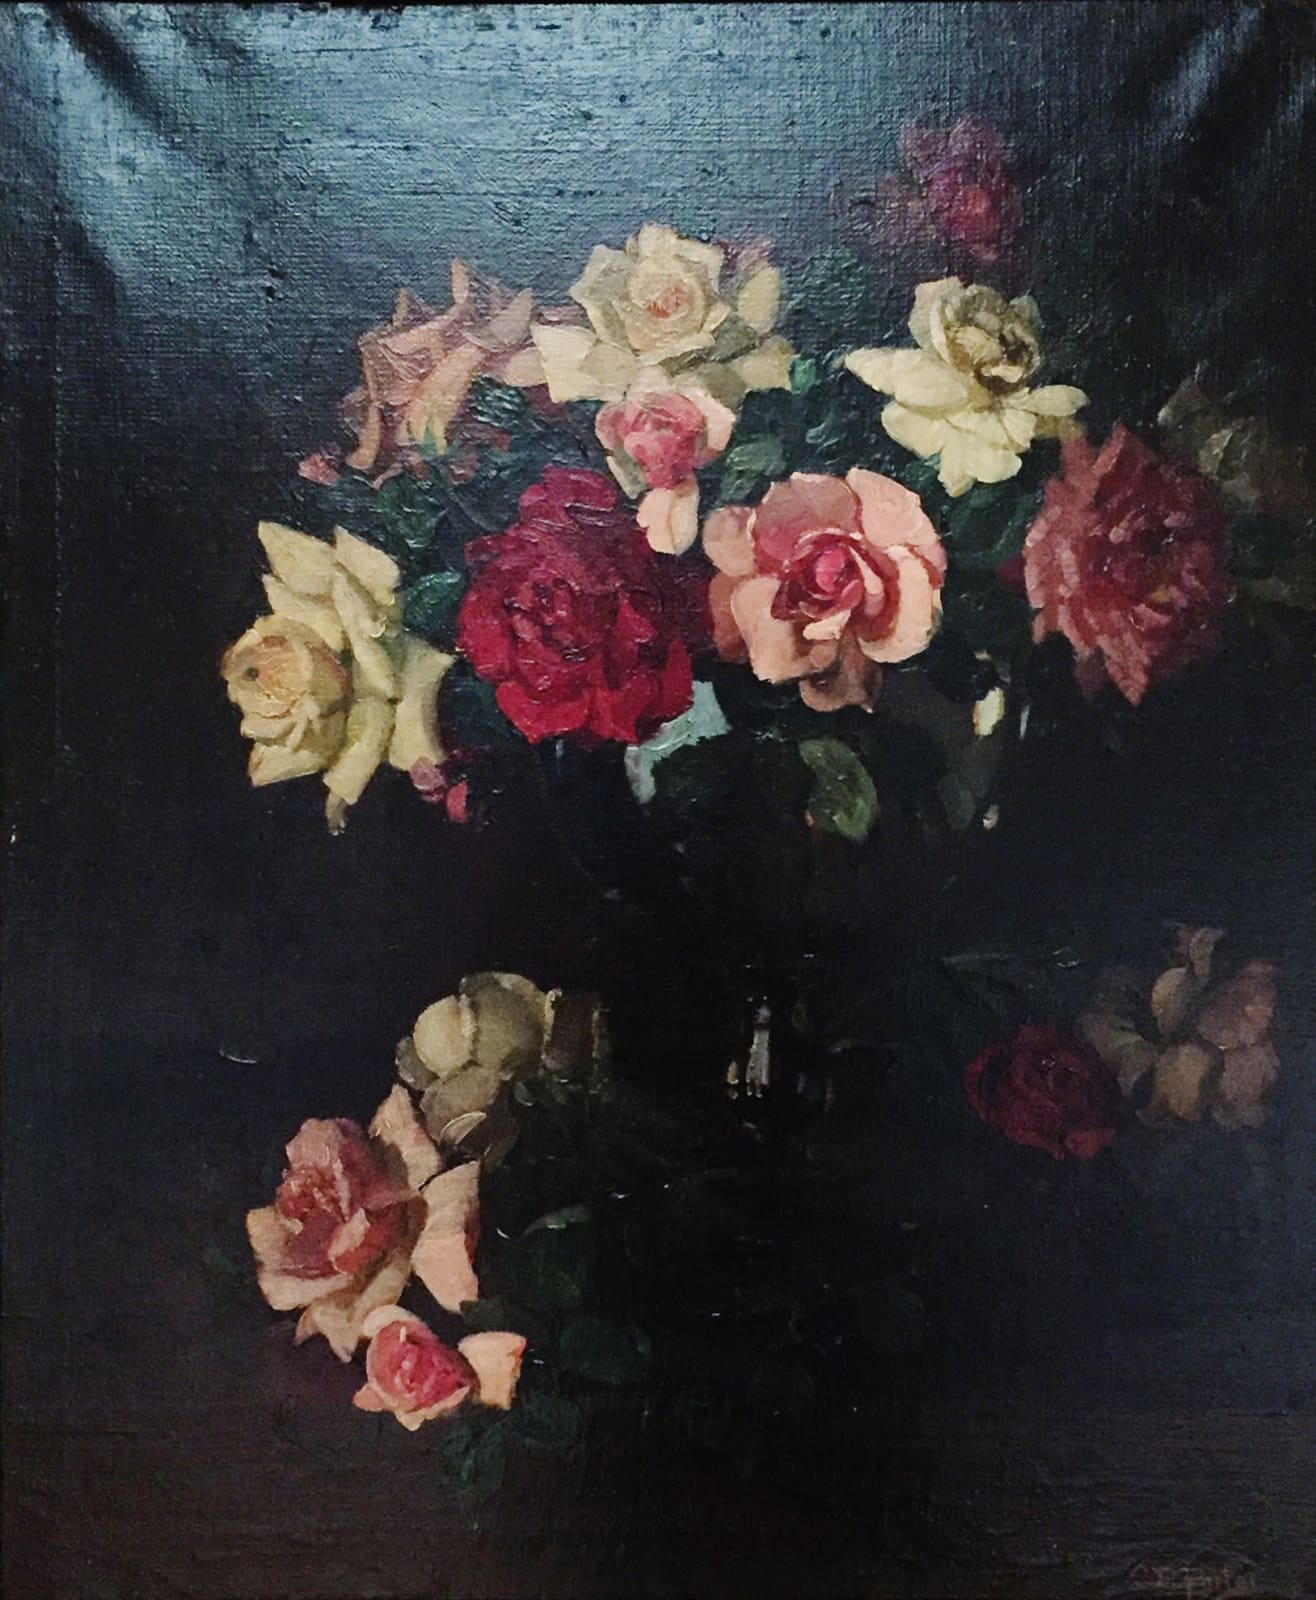 Charles Ethan Porter, Untitled, (White and Pink Roses with Center Red Rose), 1850